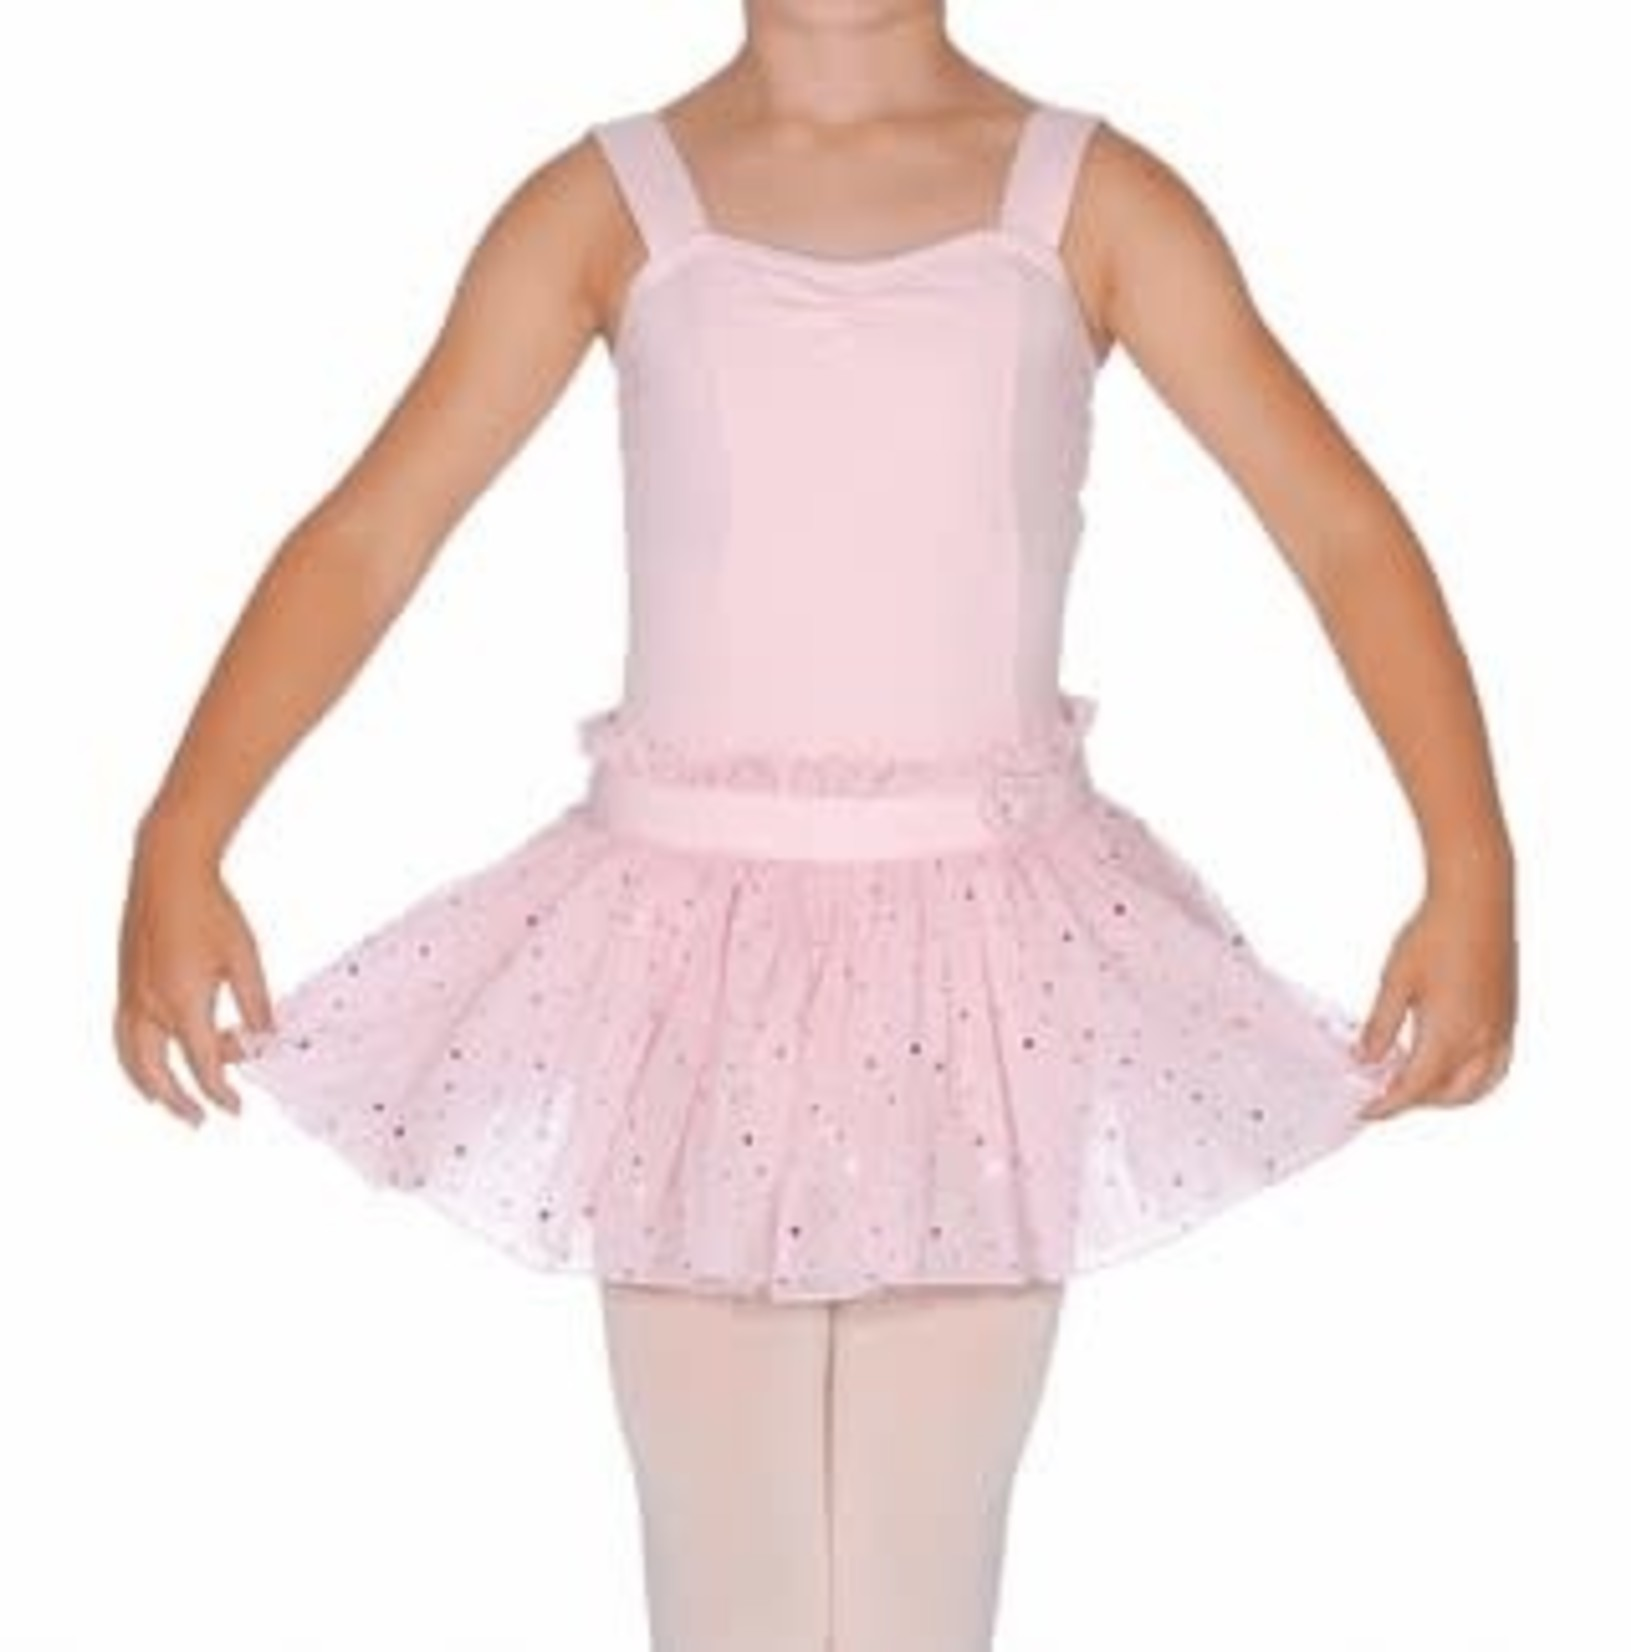 Capezio Capezio 11529C Sweatheart Tank Skirted Leotard